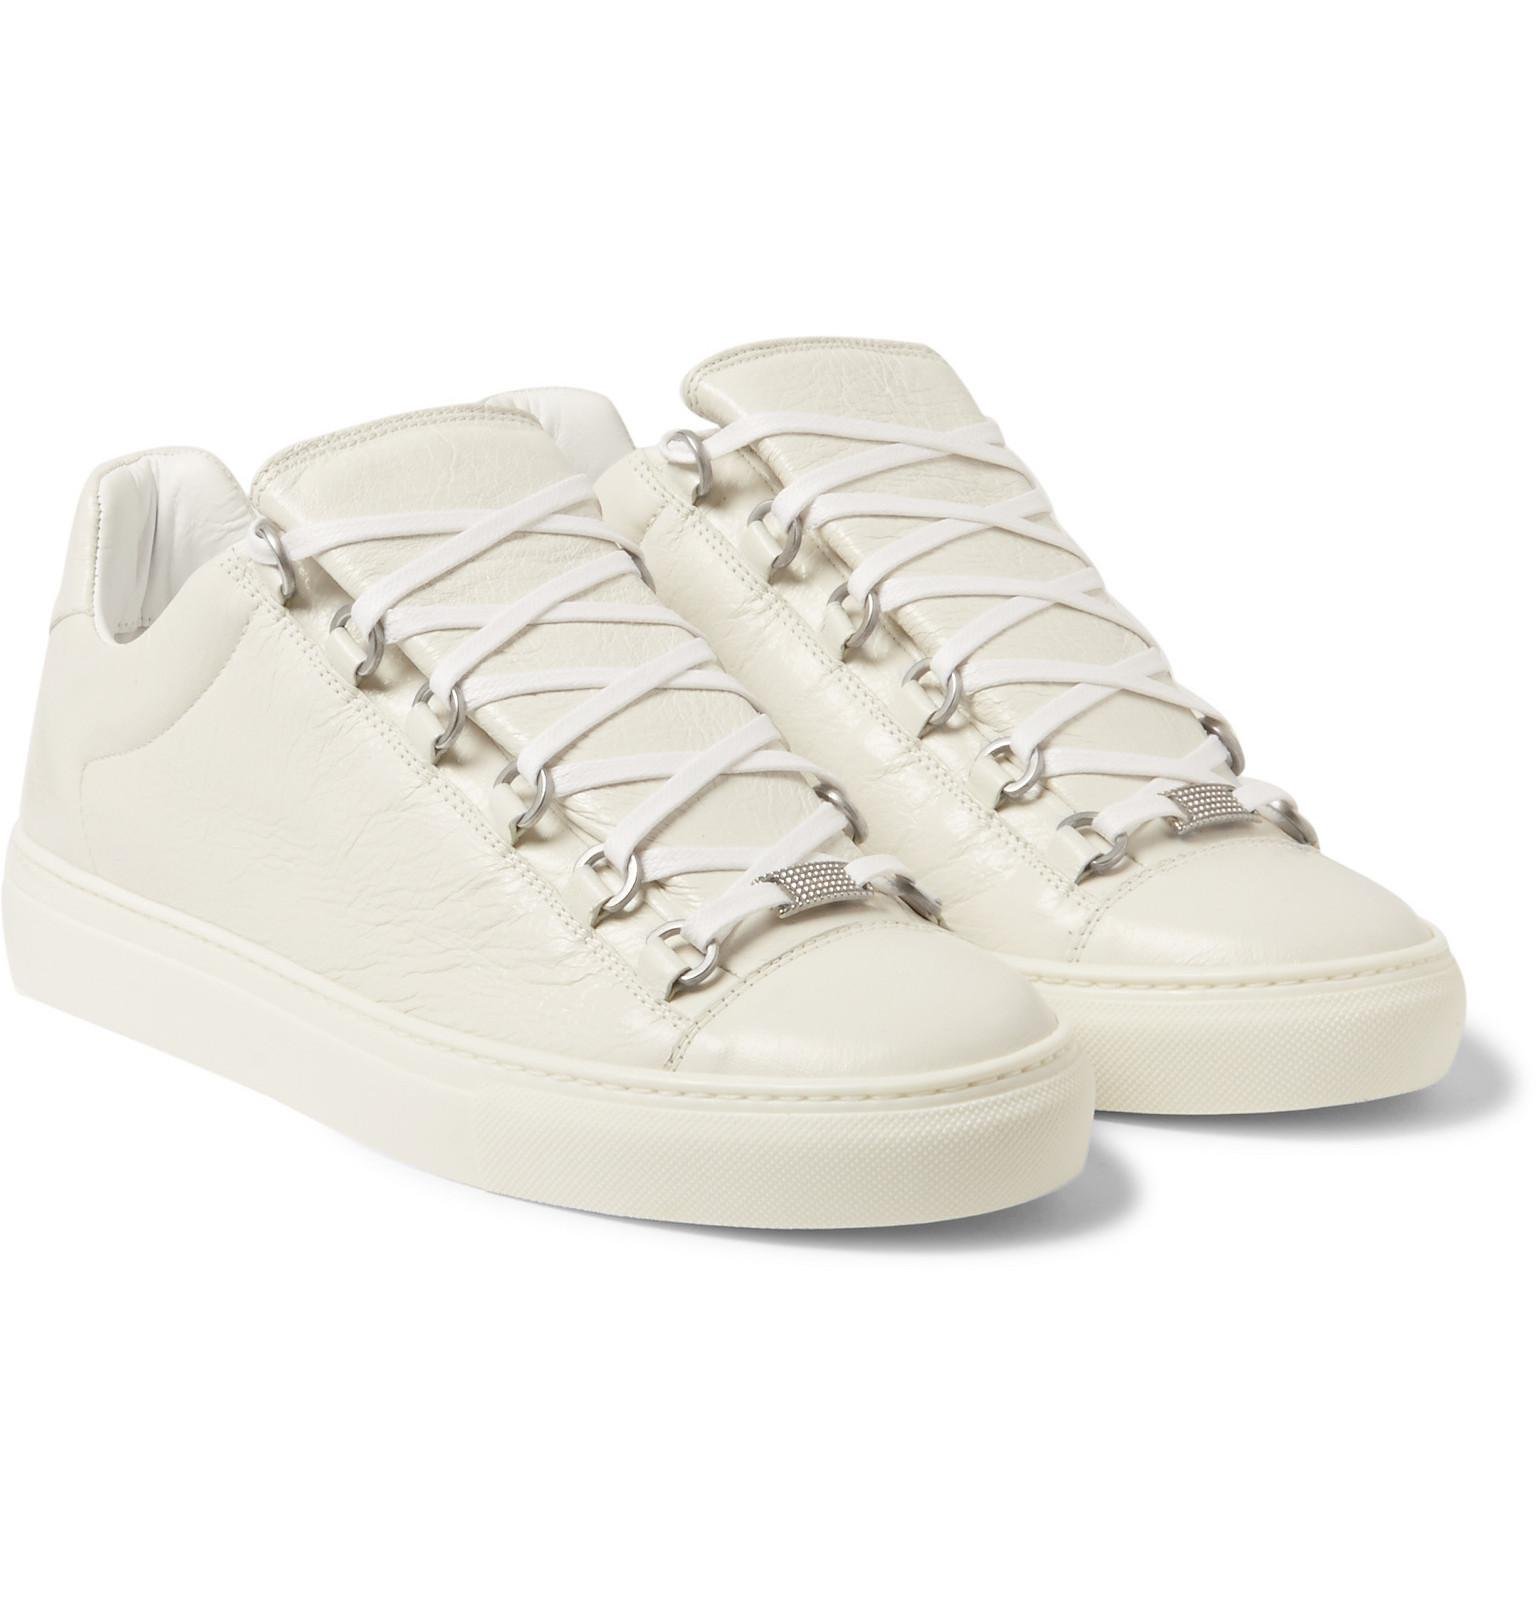 a2dc9a41f07a Lyst - Balenciaga Arena Low-top Leather Trainers in White for Men